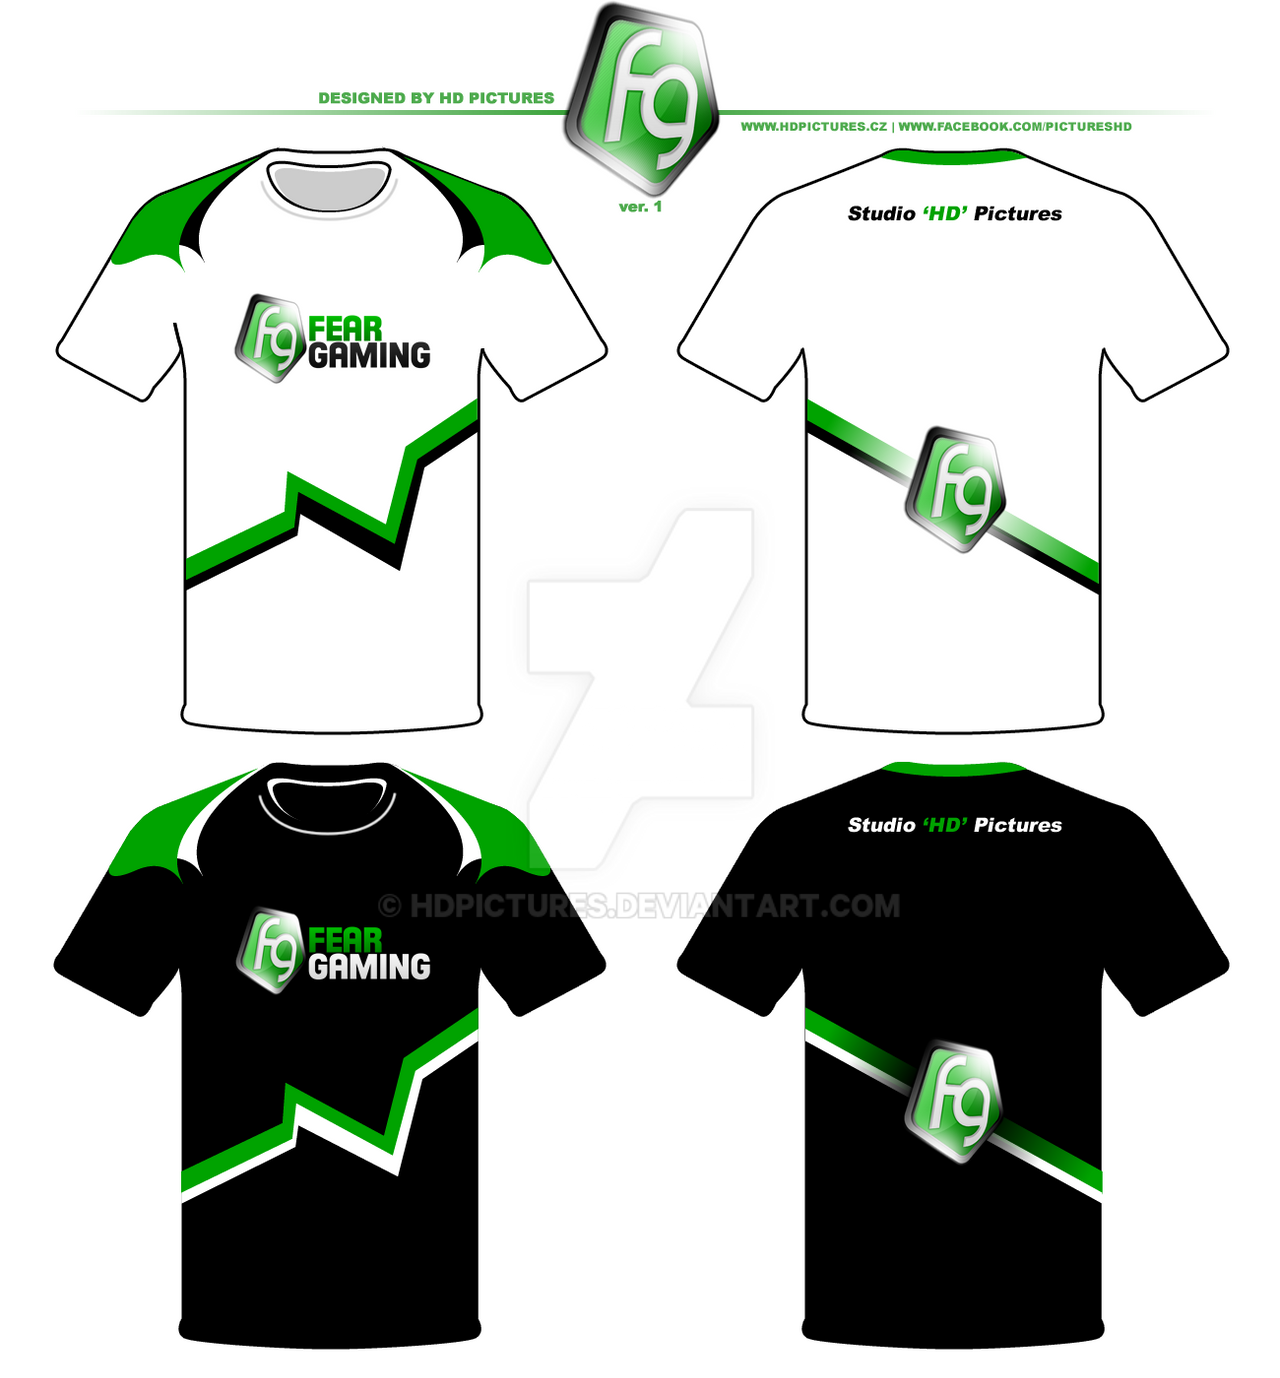 design team t shirts fear gaming ver 1 by hdpictures watch designs